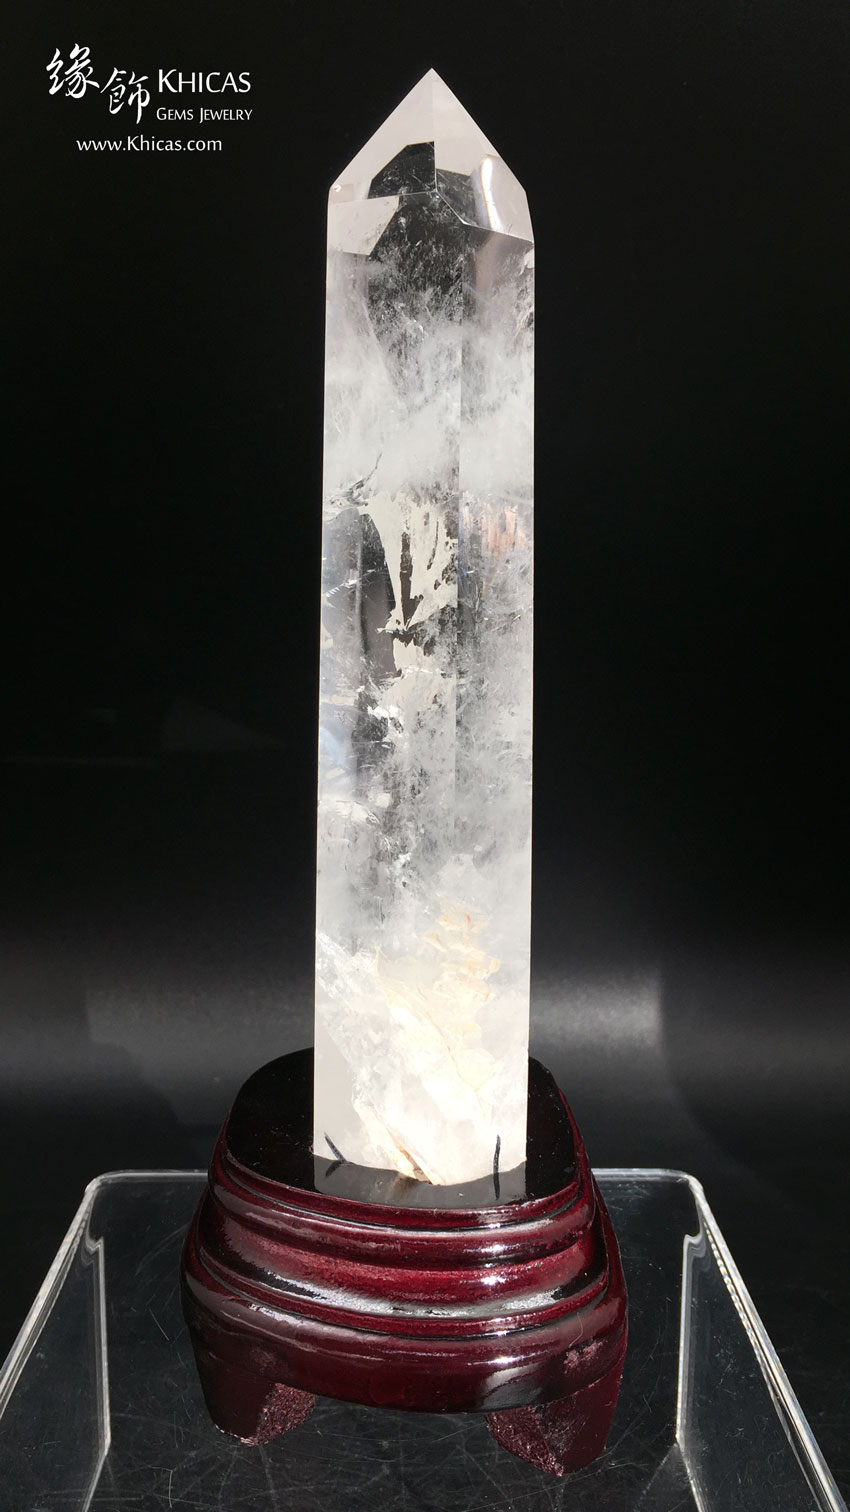 巴西白水晶柱 White Crystal Quartz Point CP1508042 @ Khicas Gems 緣飾天然水晶